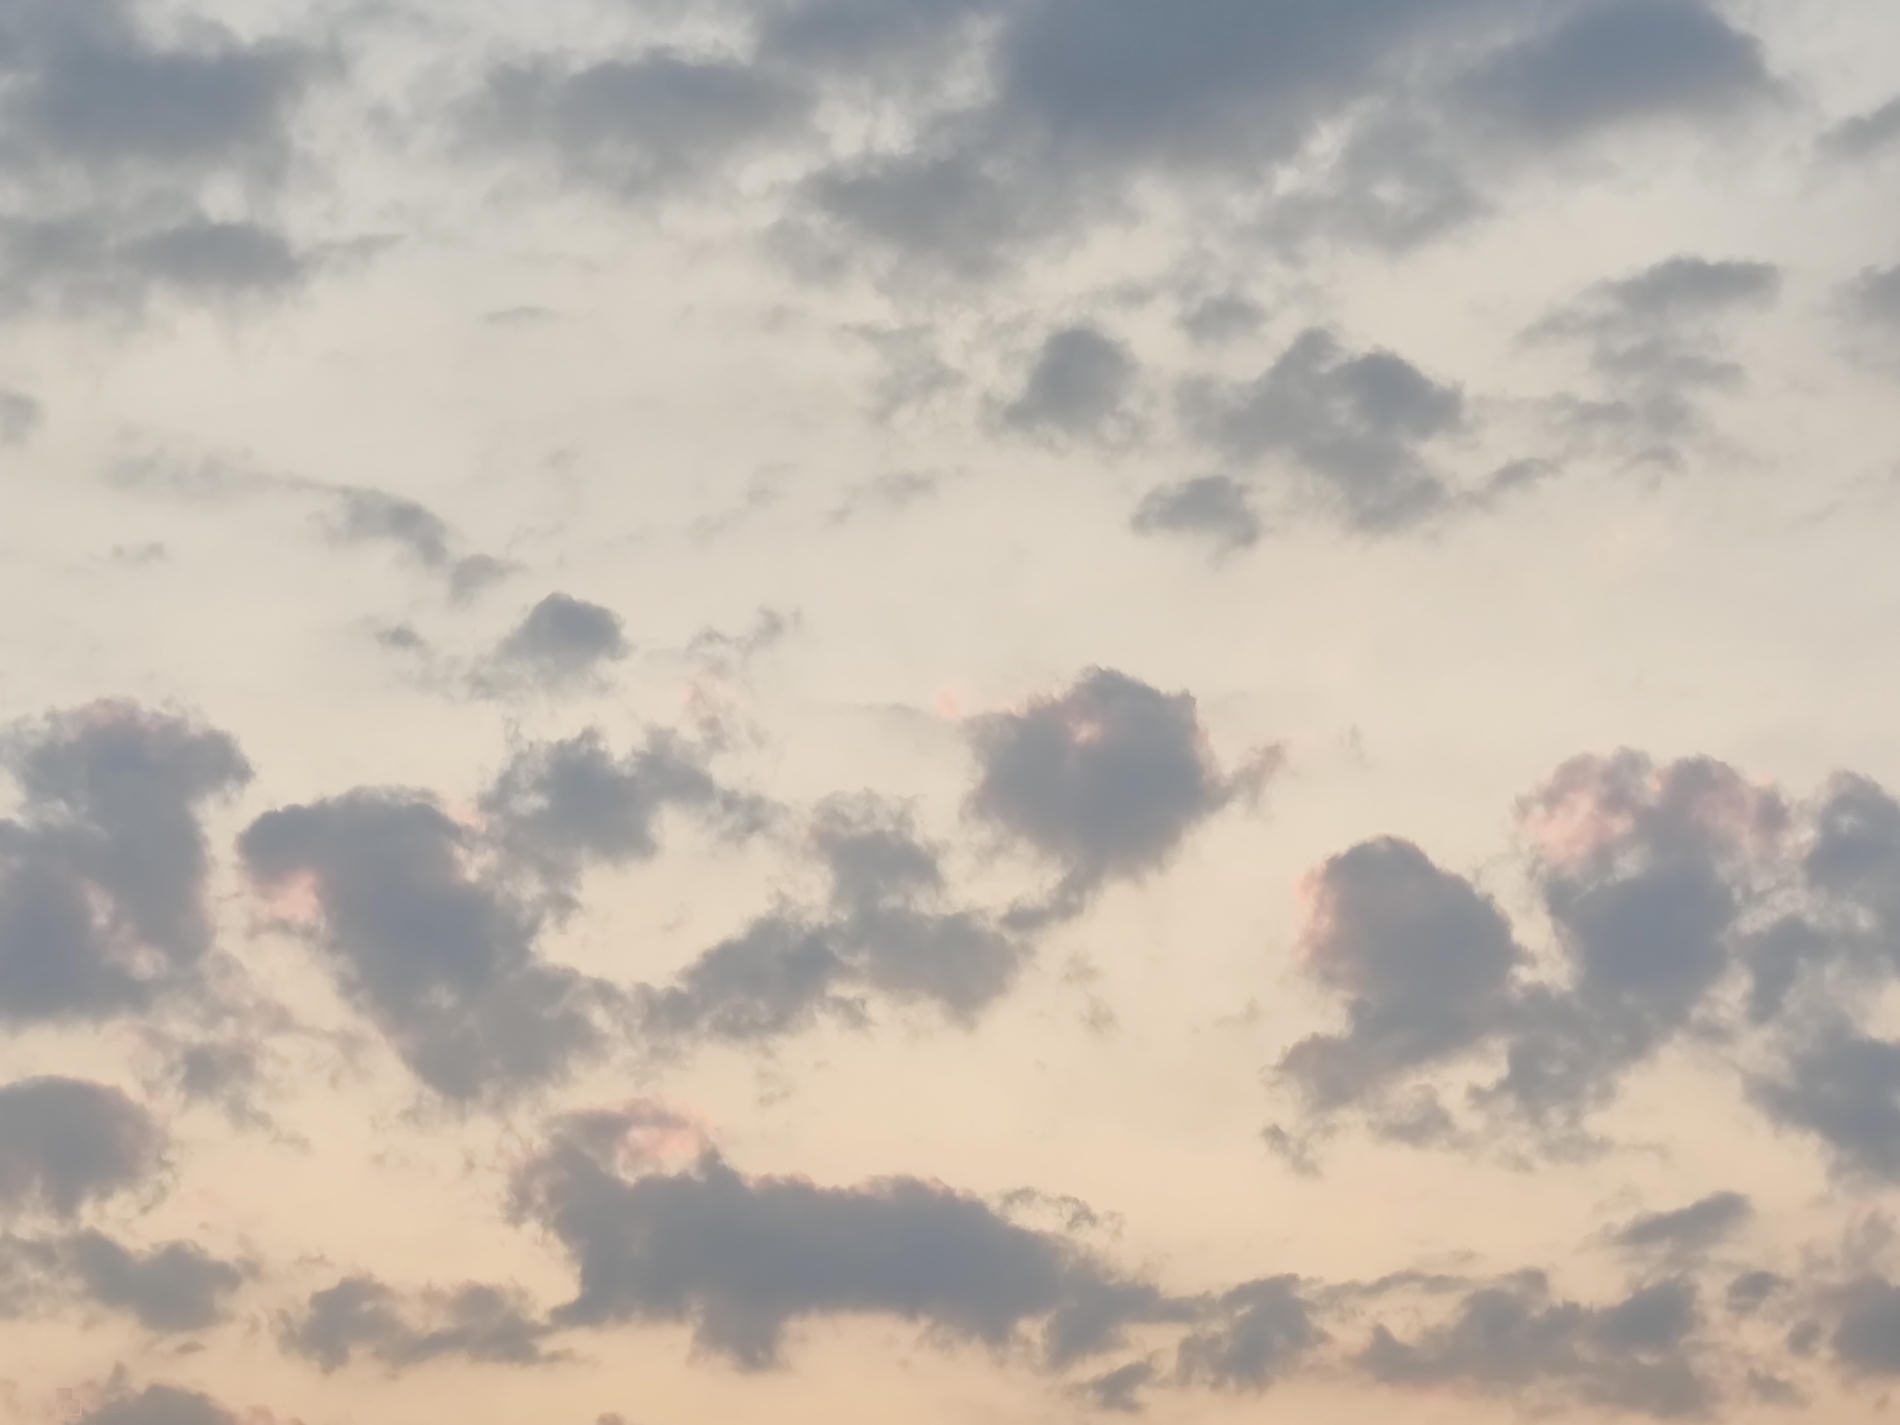 Day 79 – Nothing but the clouds vol 6